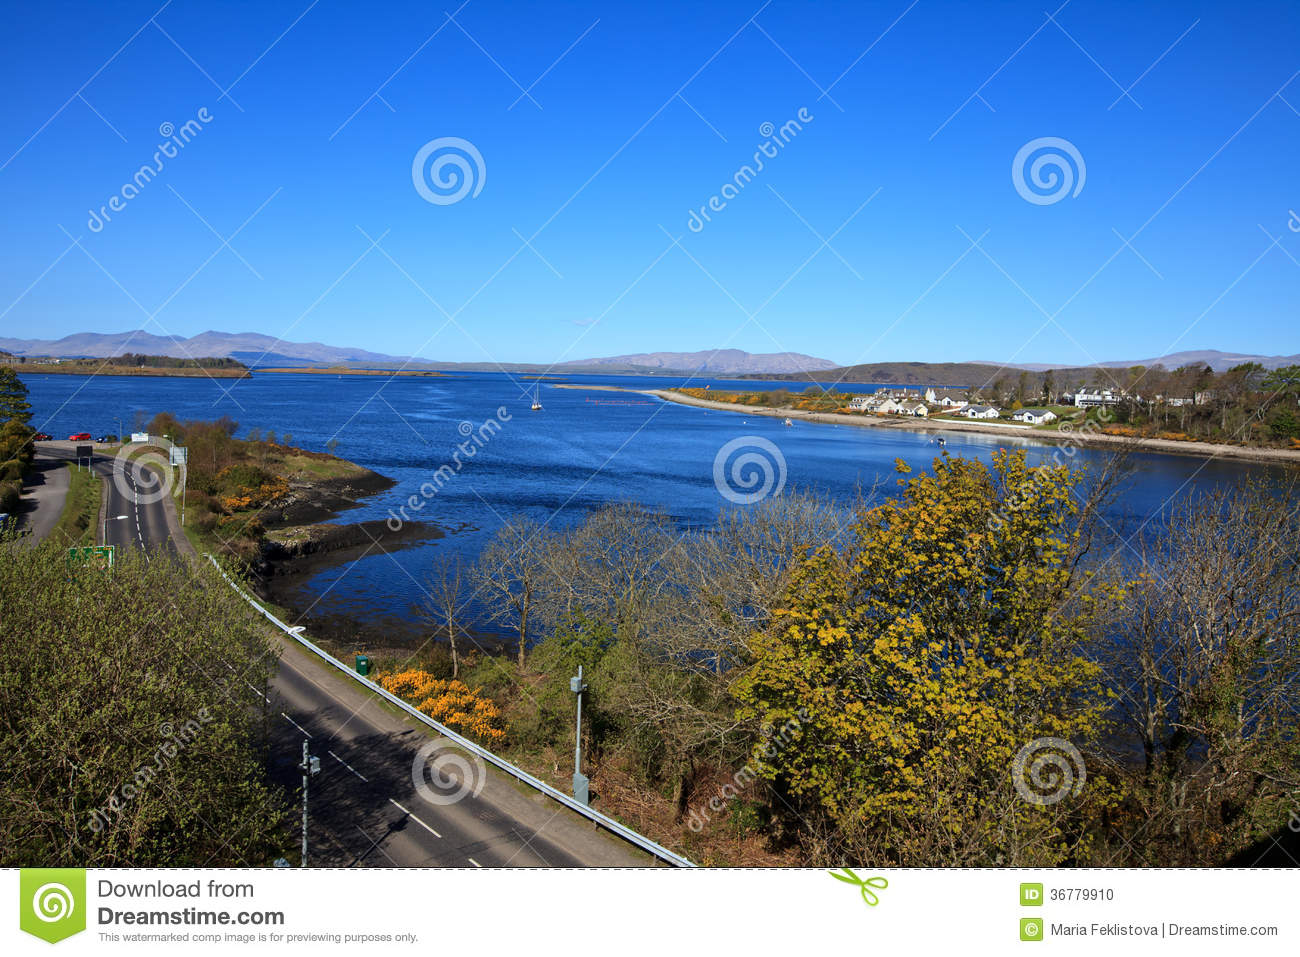 Loch Etive clipart #11, Download drawings